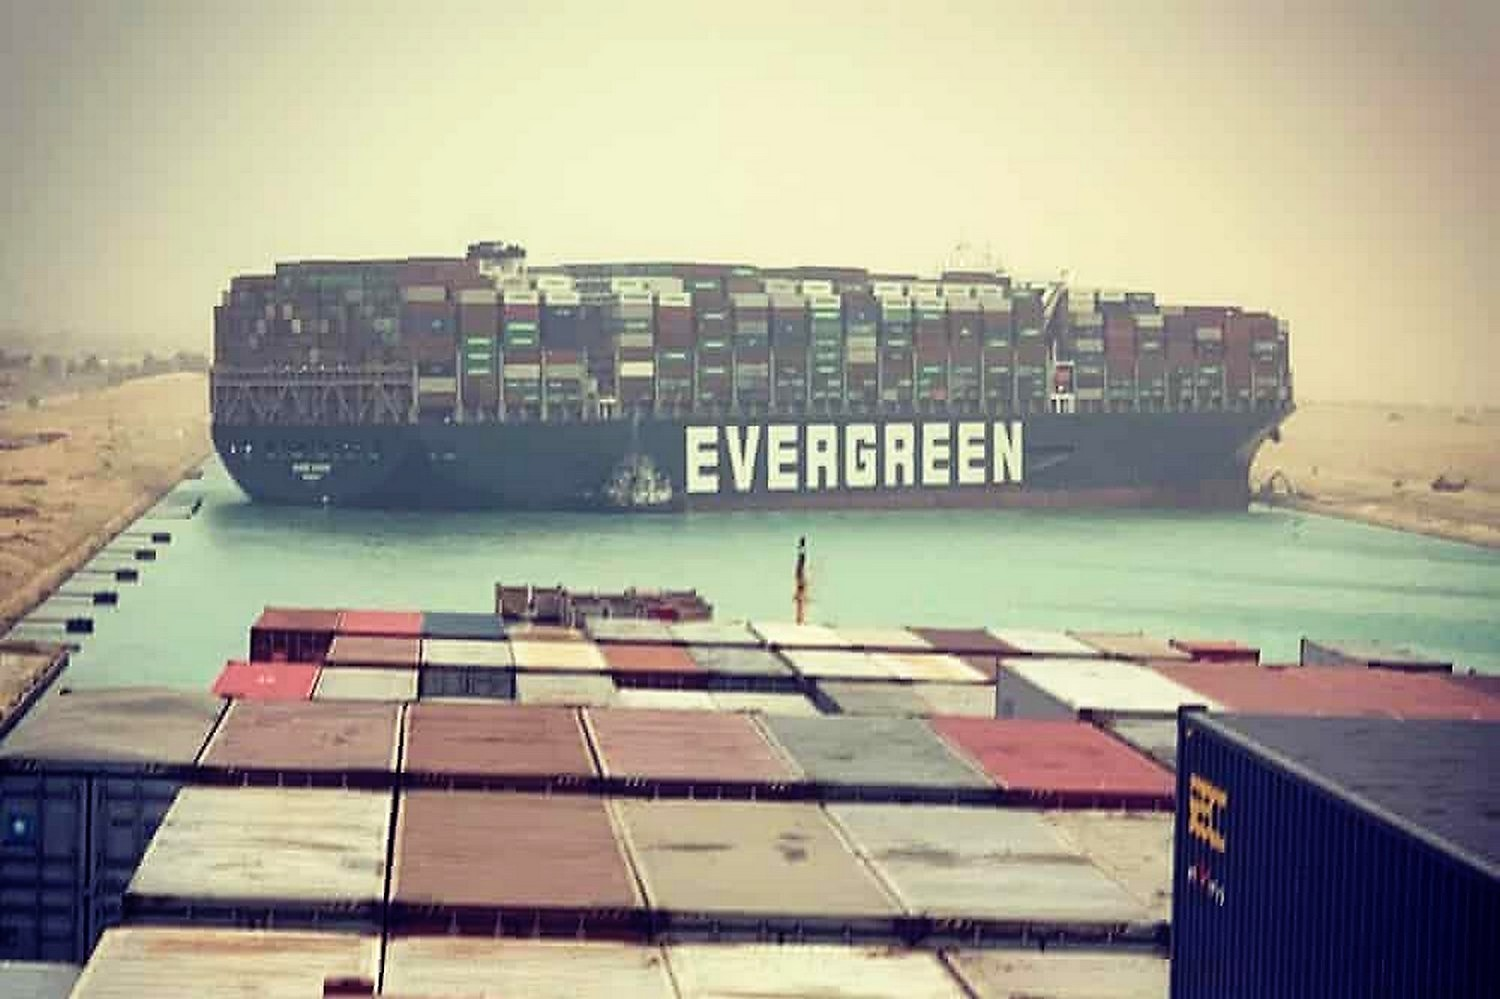 The Evergreen container ship, stuck and blocking the Suez Canal.